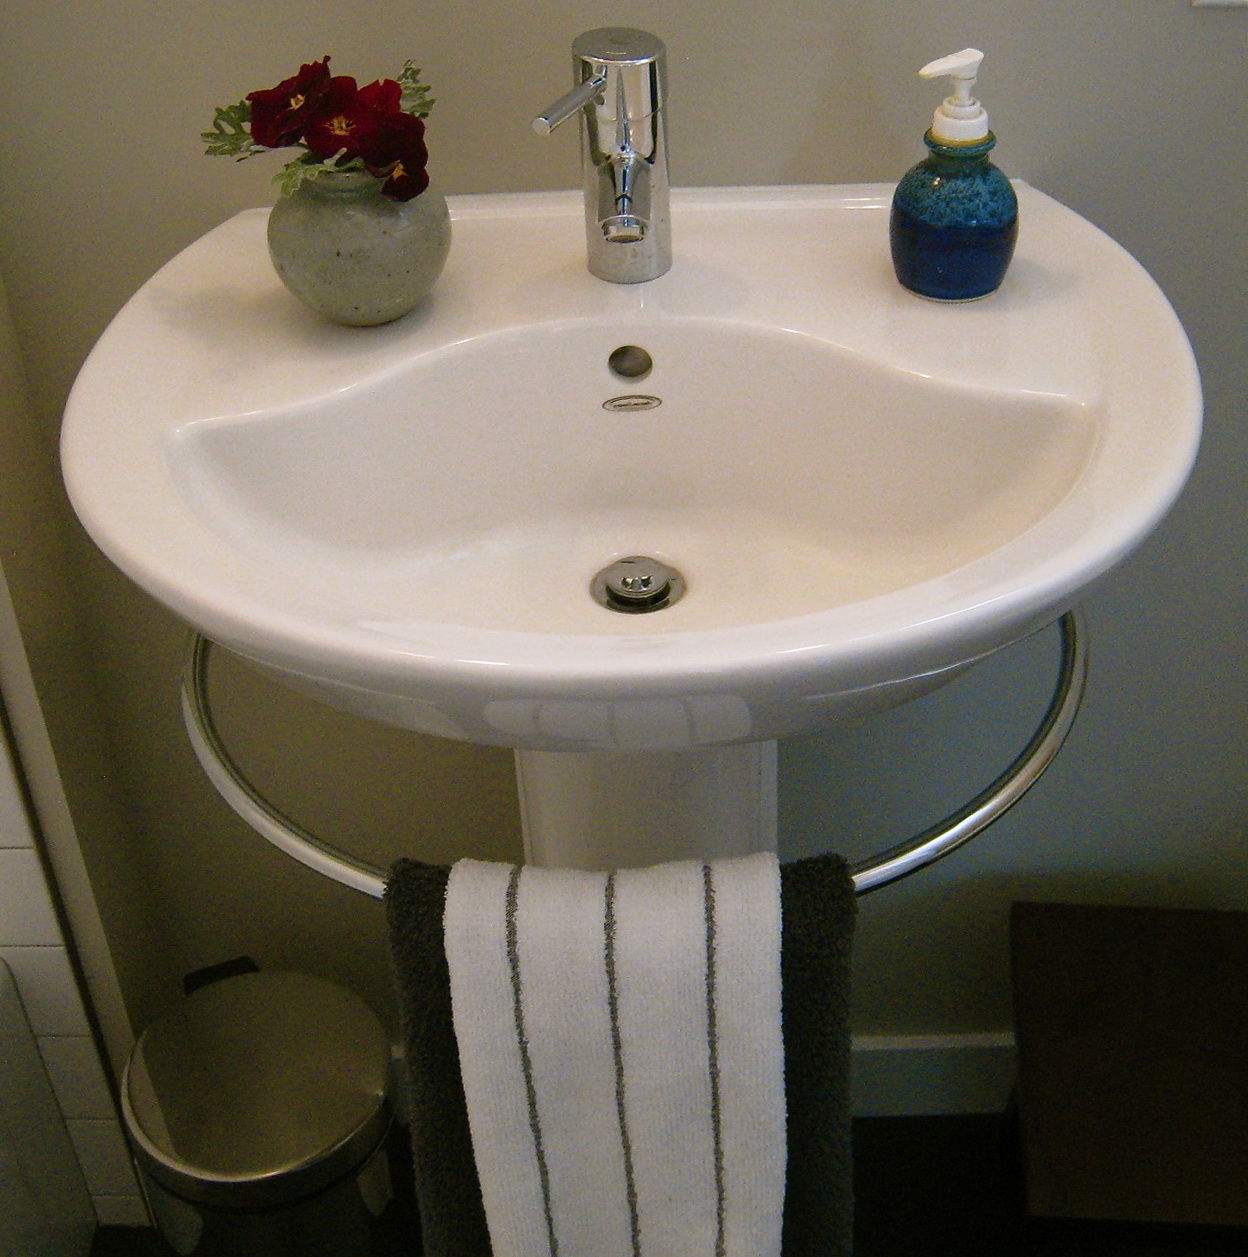 Porcher Pedestal Sink With Towel Bar Home Design Ideas